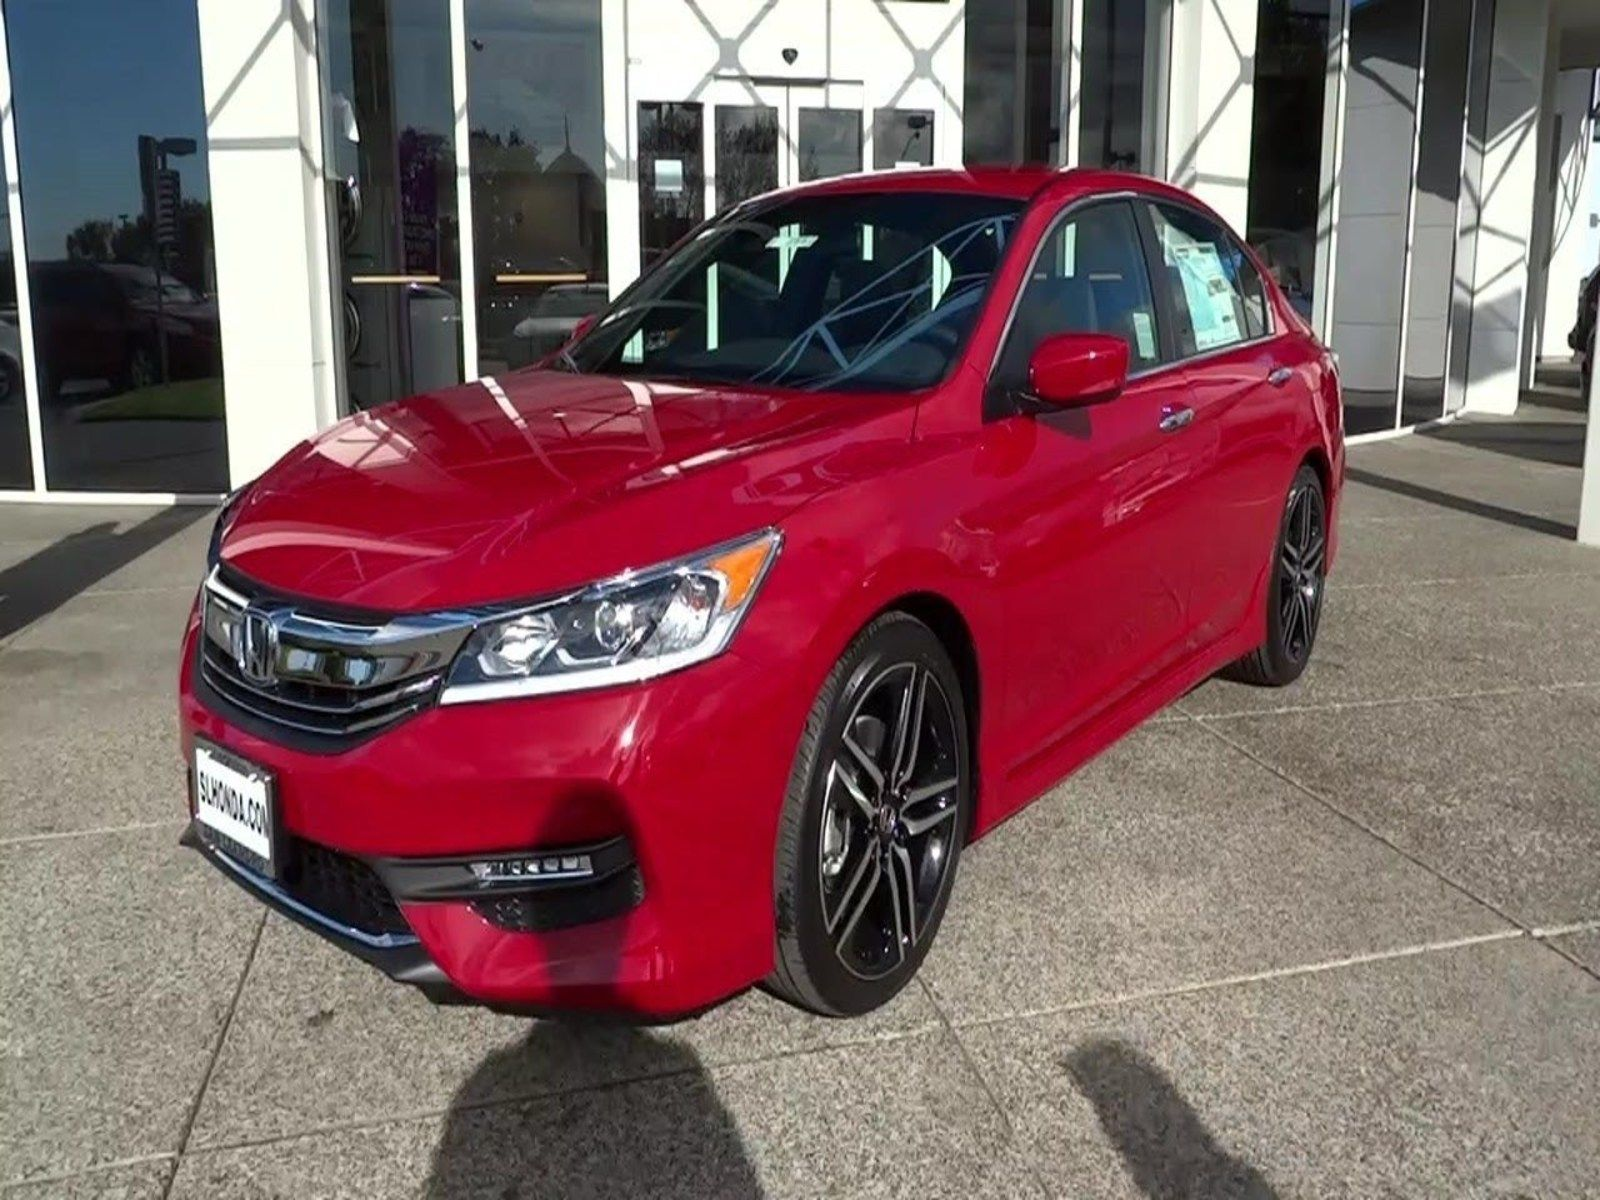 2016 Honda Accord Sport Price Used (With images) Accord